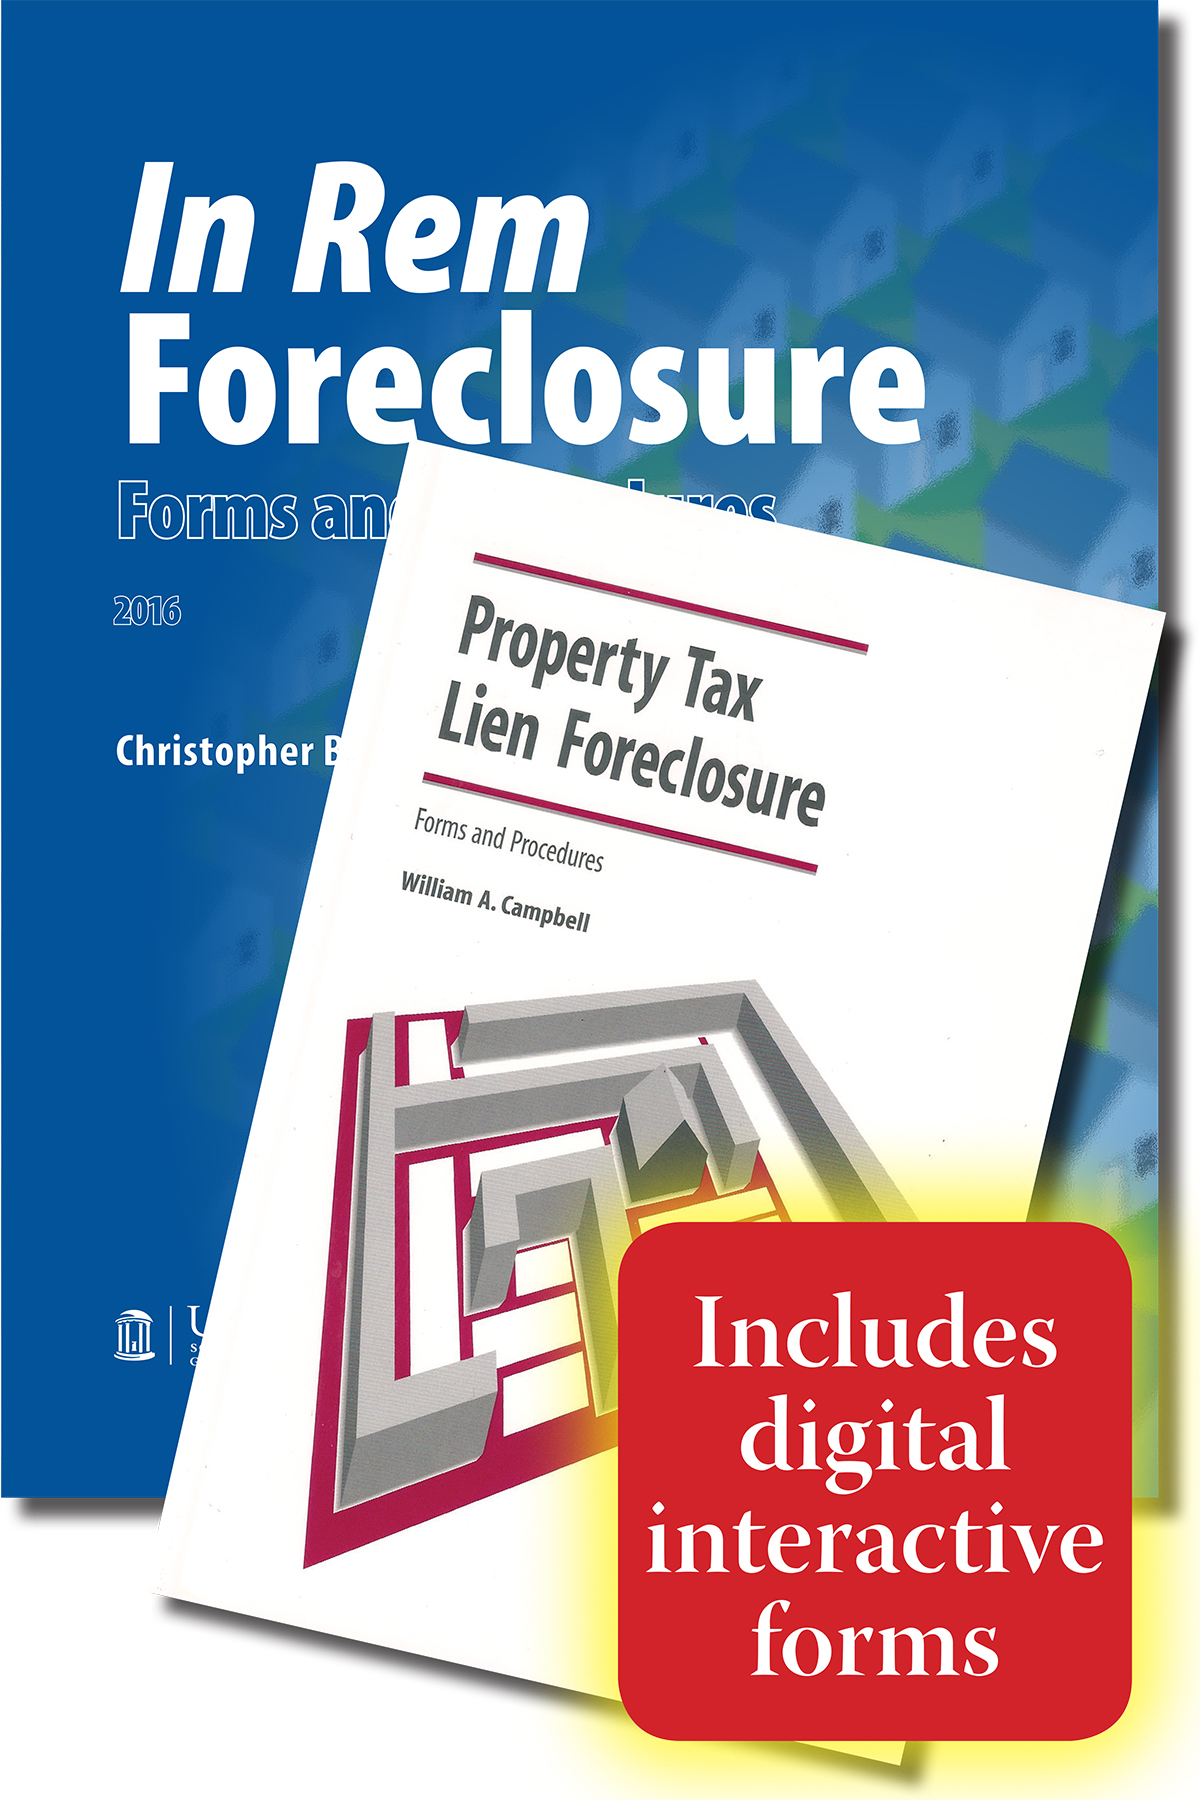 Cover image for In Rem Foreclosure Forms and Procedures and Property Tax Lien Foreclosure Forms and Procedures